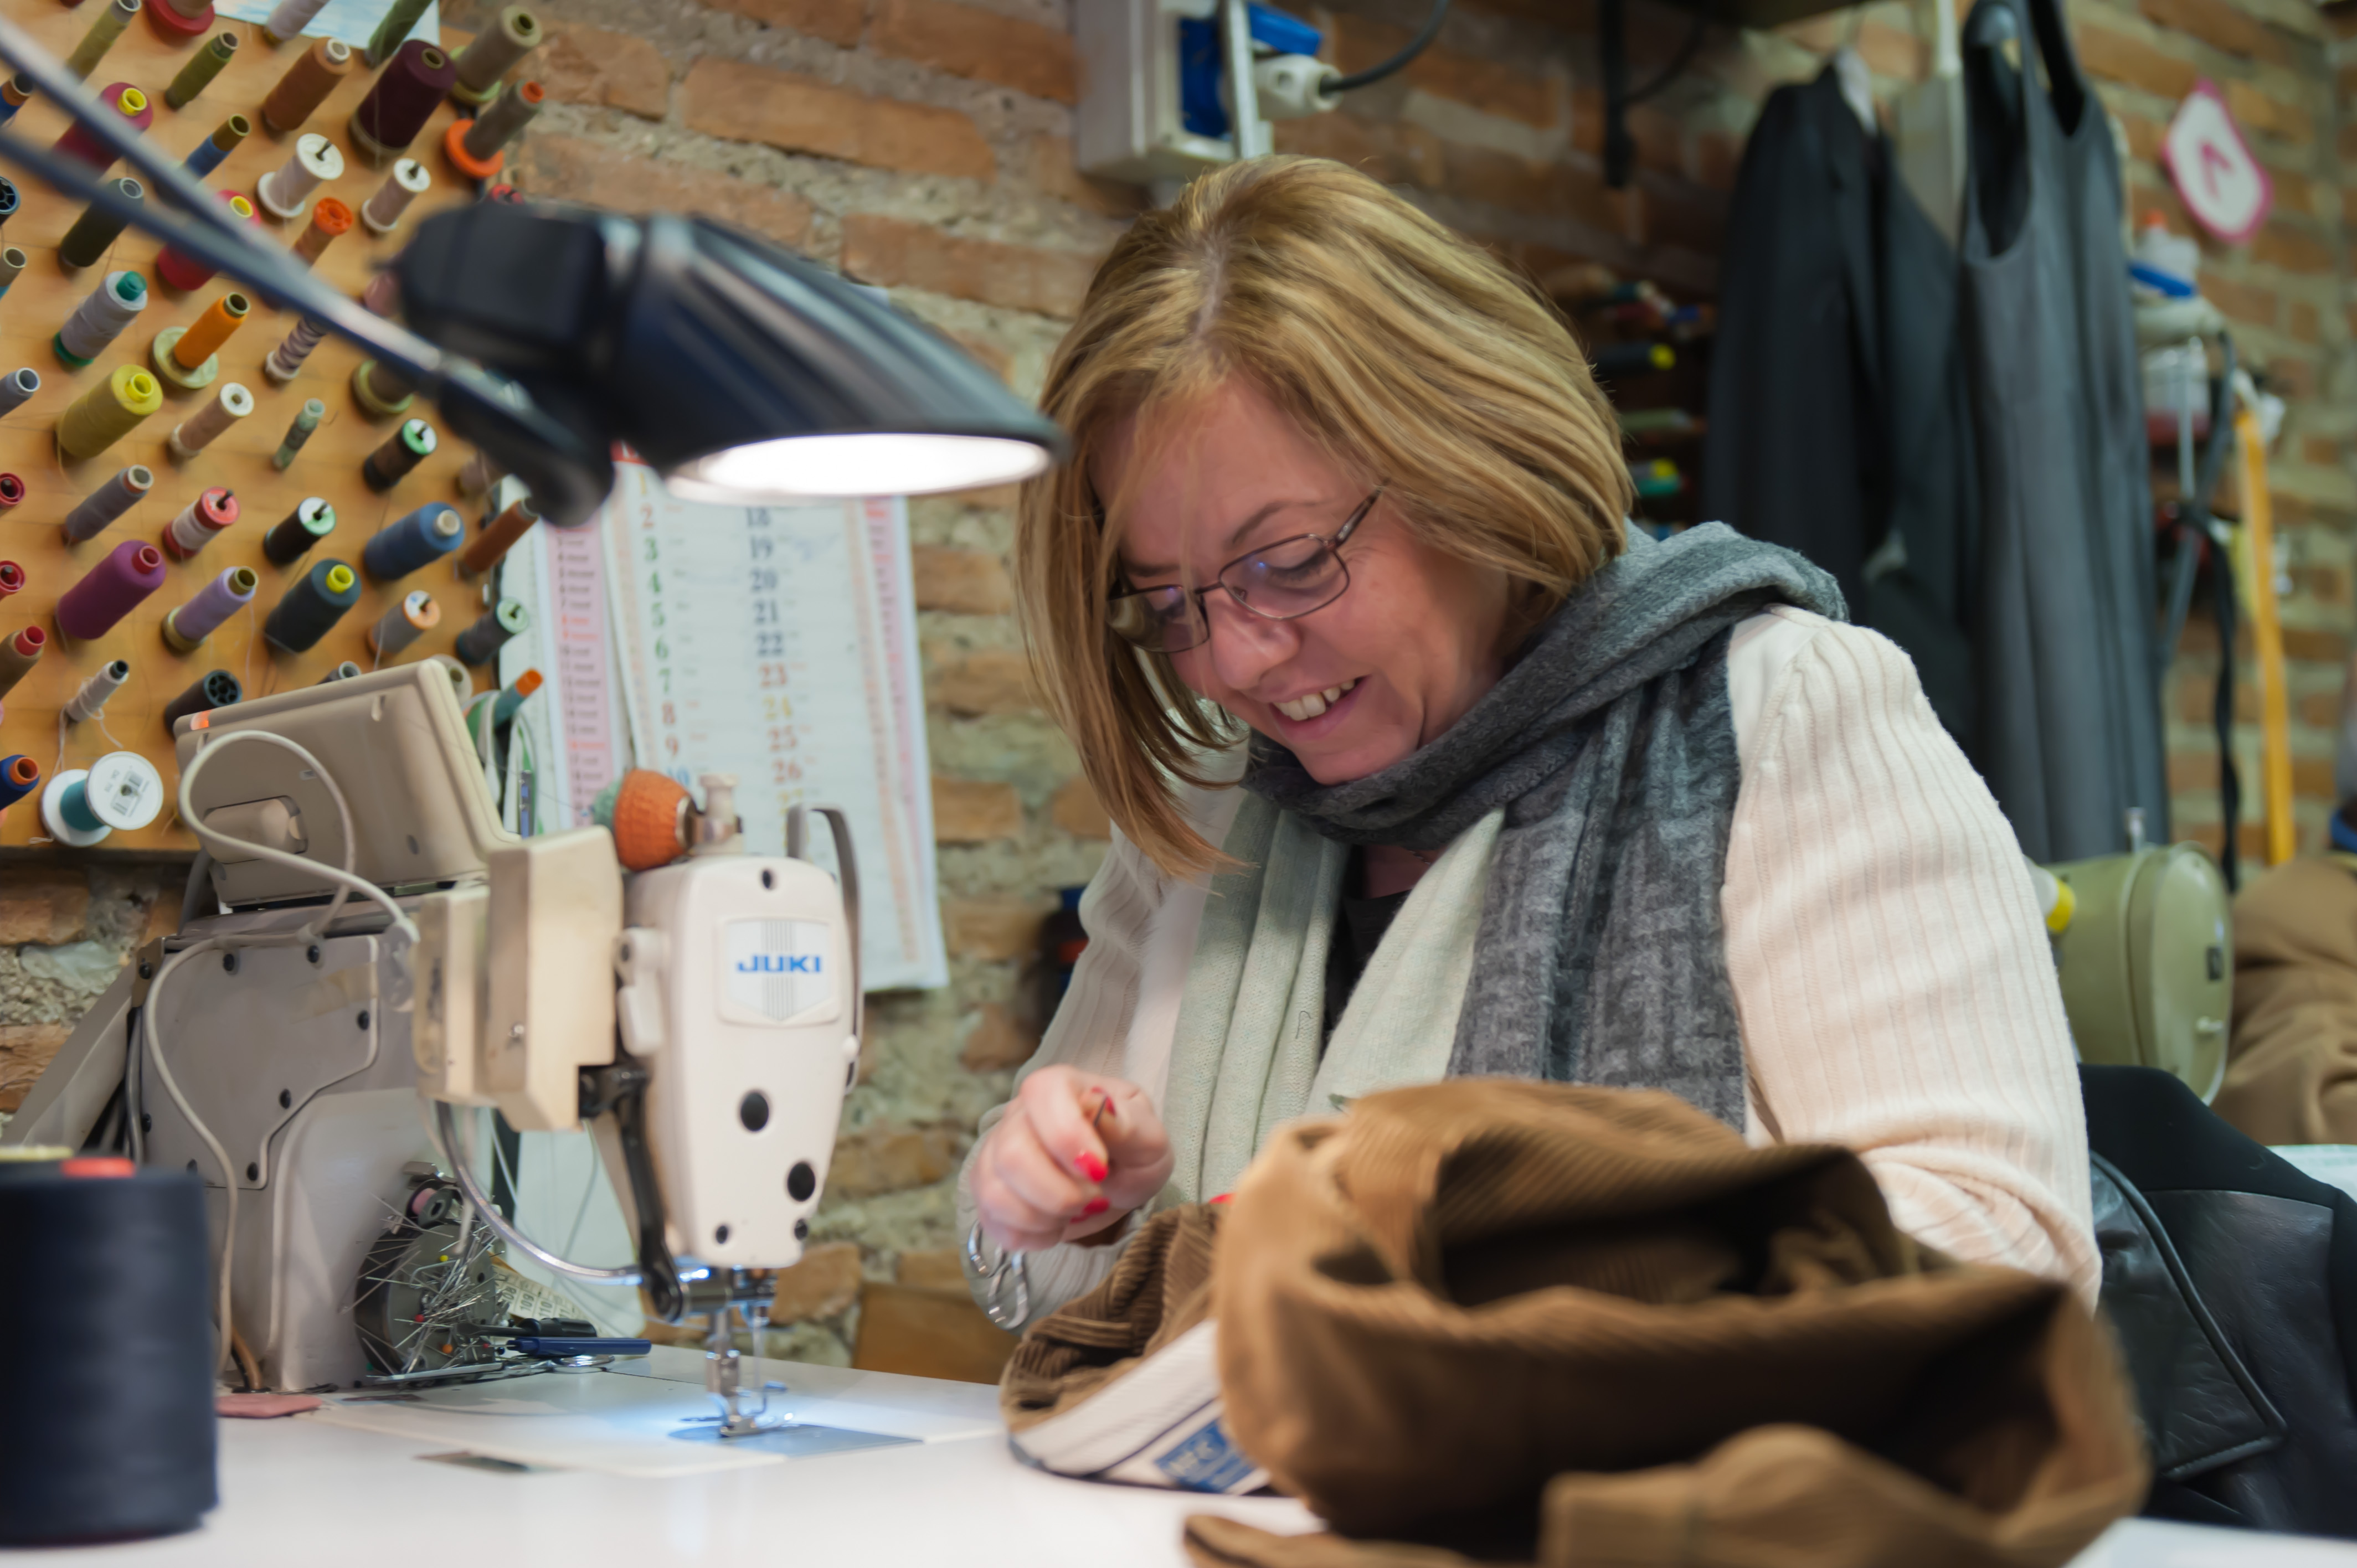 Caption: Tailor Paola Gueli<br/> has helped make Italy famous for<br/> its quality, handmade products<br/> but she is part of a disappearing breed., Credit: Luigi Fraboni